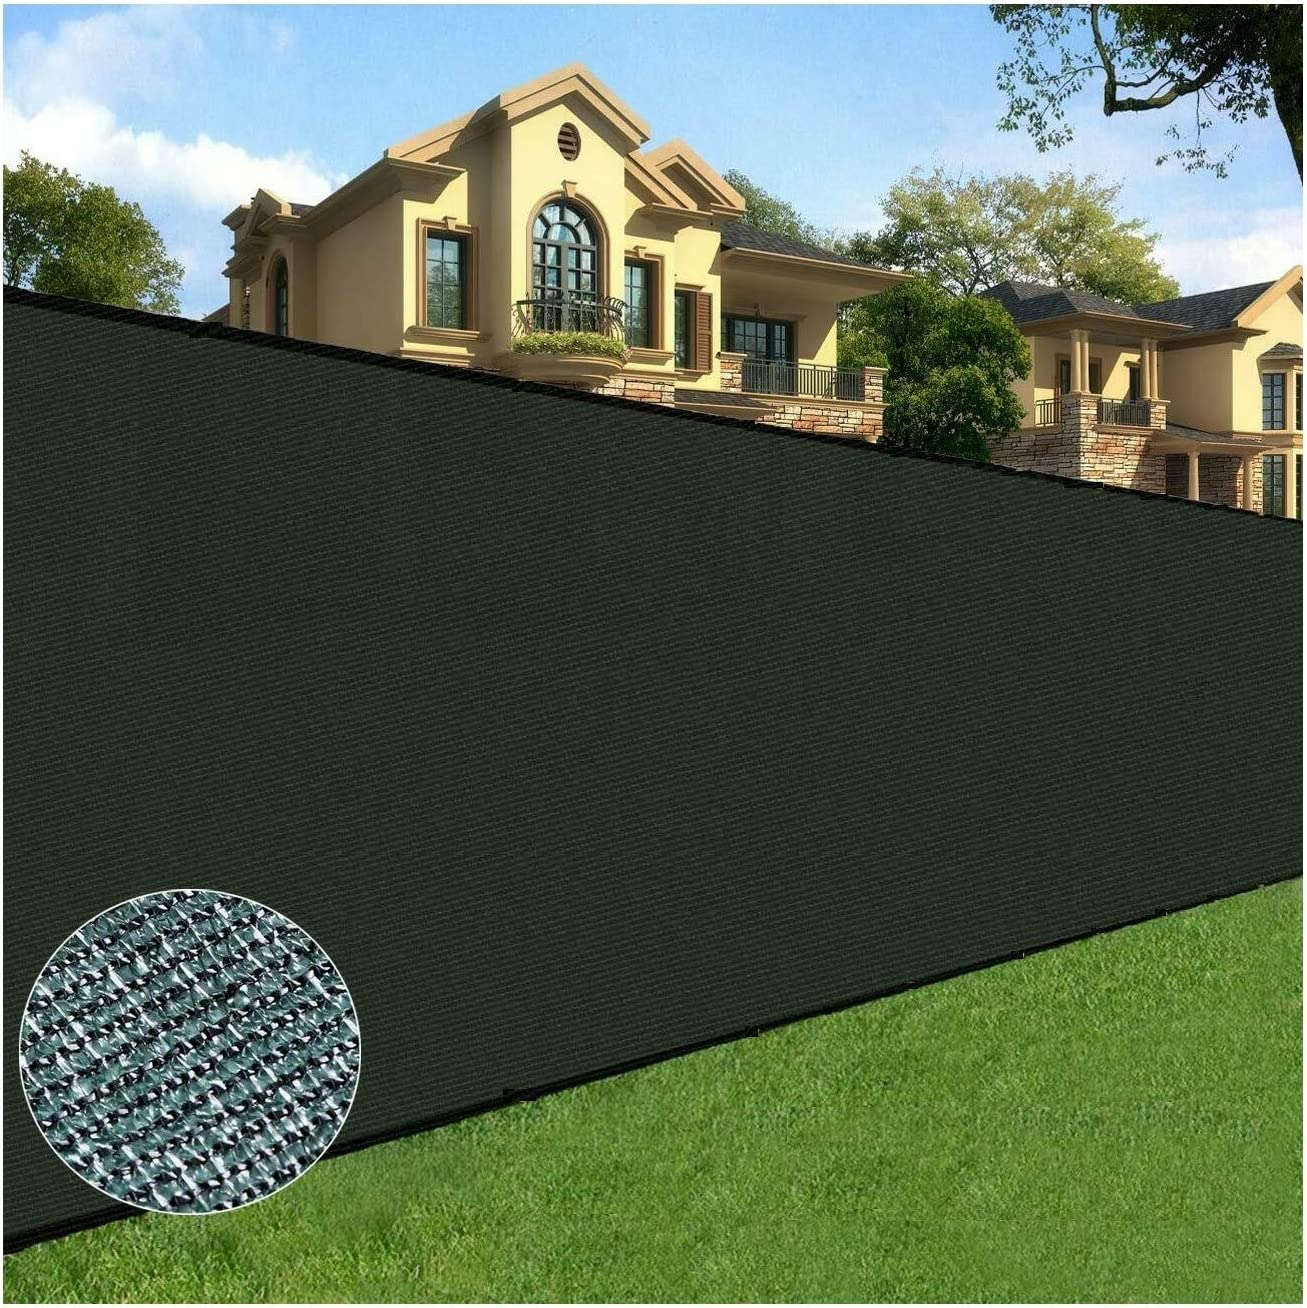 New color Orion Privacy Fence Screen Netting R with Fabric Mesh Excellence Windscreen